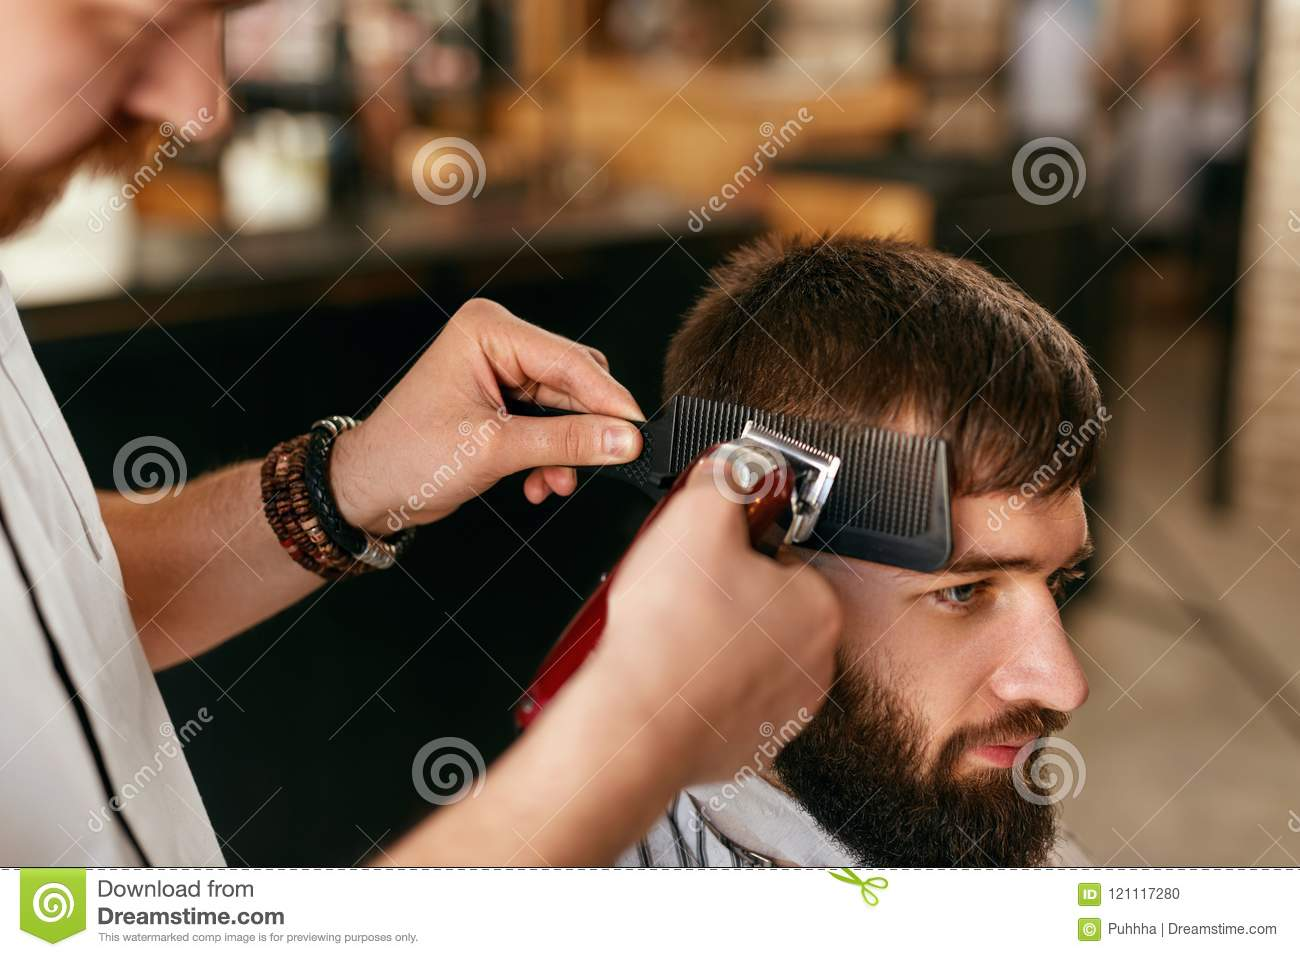 Barber Shop Men Hair Cut Barber Doing Men Fashion Hairstyle Stock Photo Image Of Client People 121117280